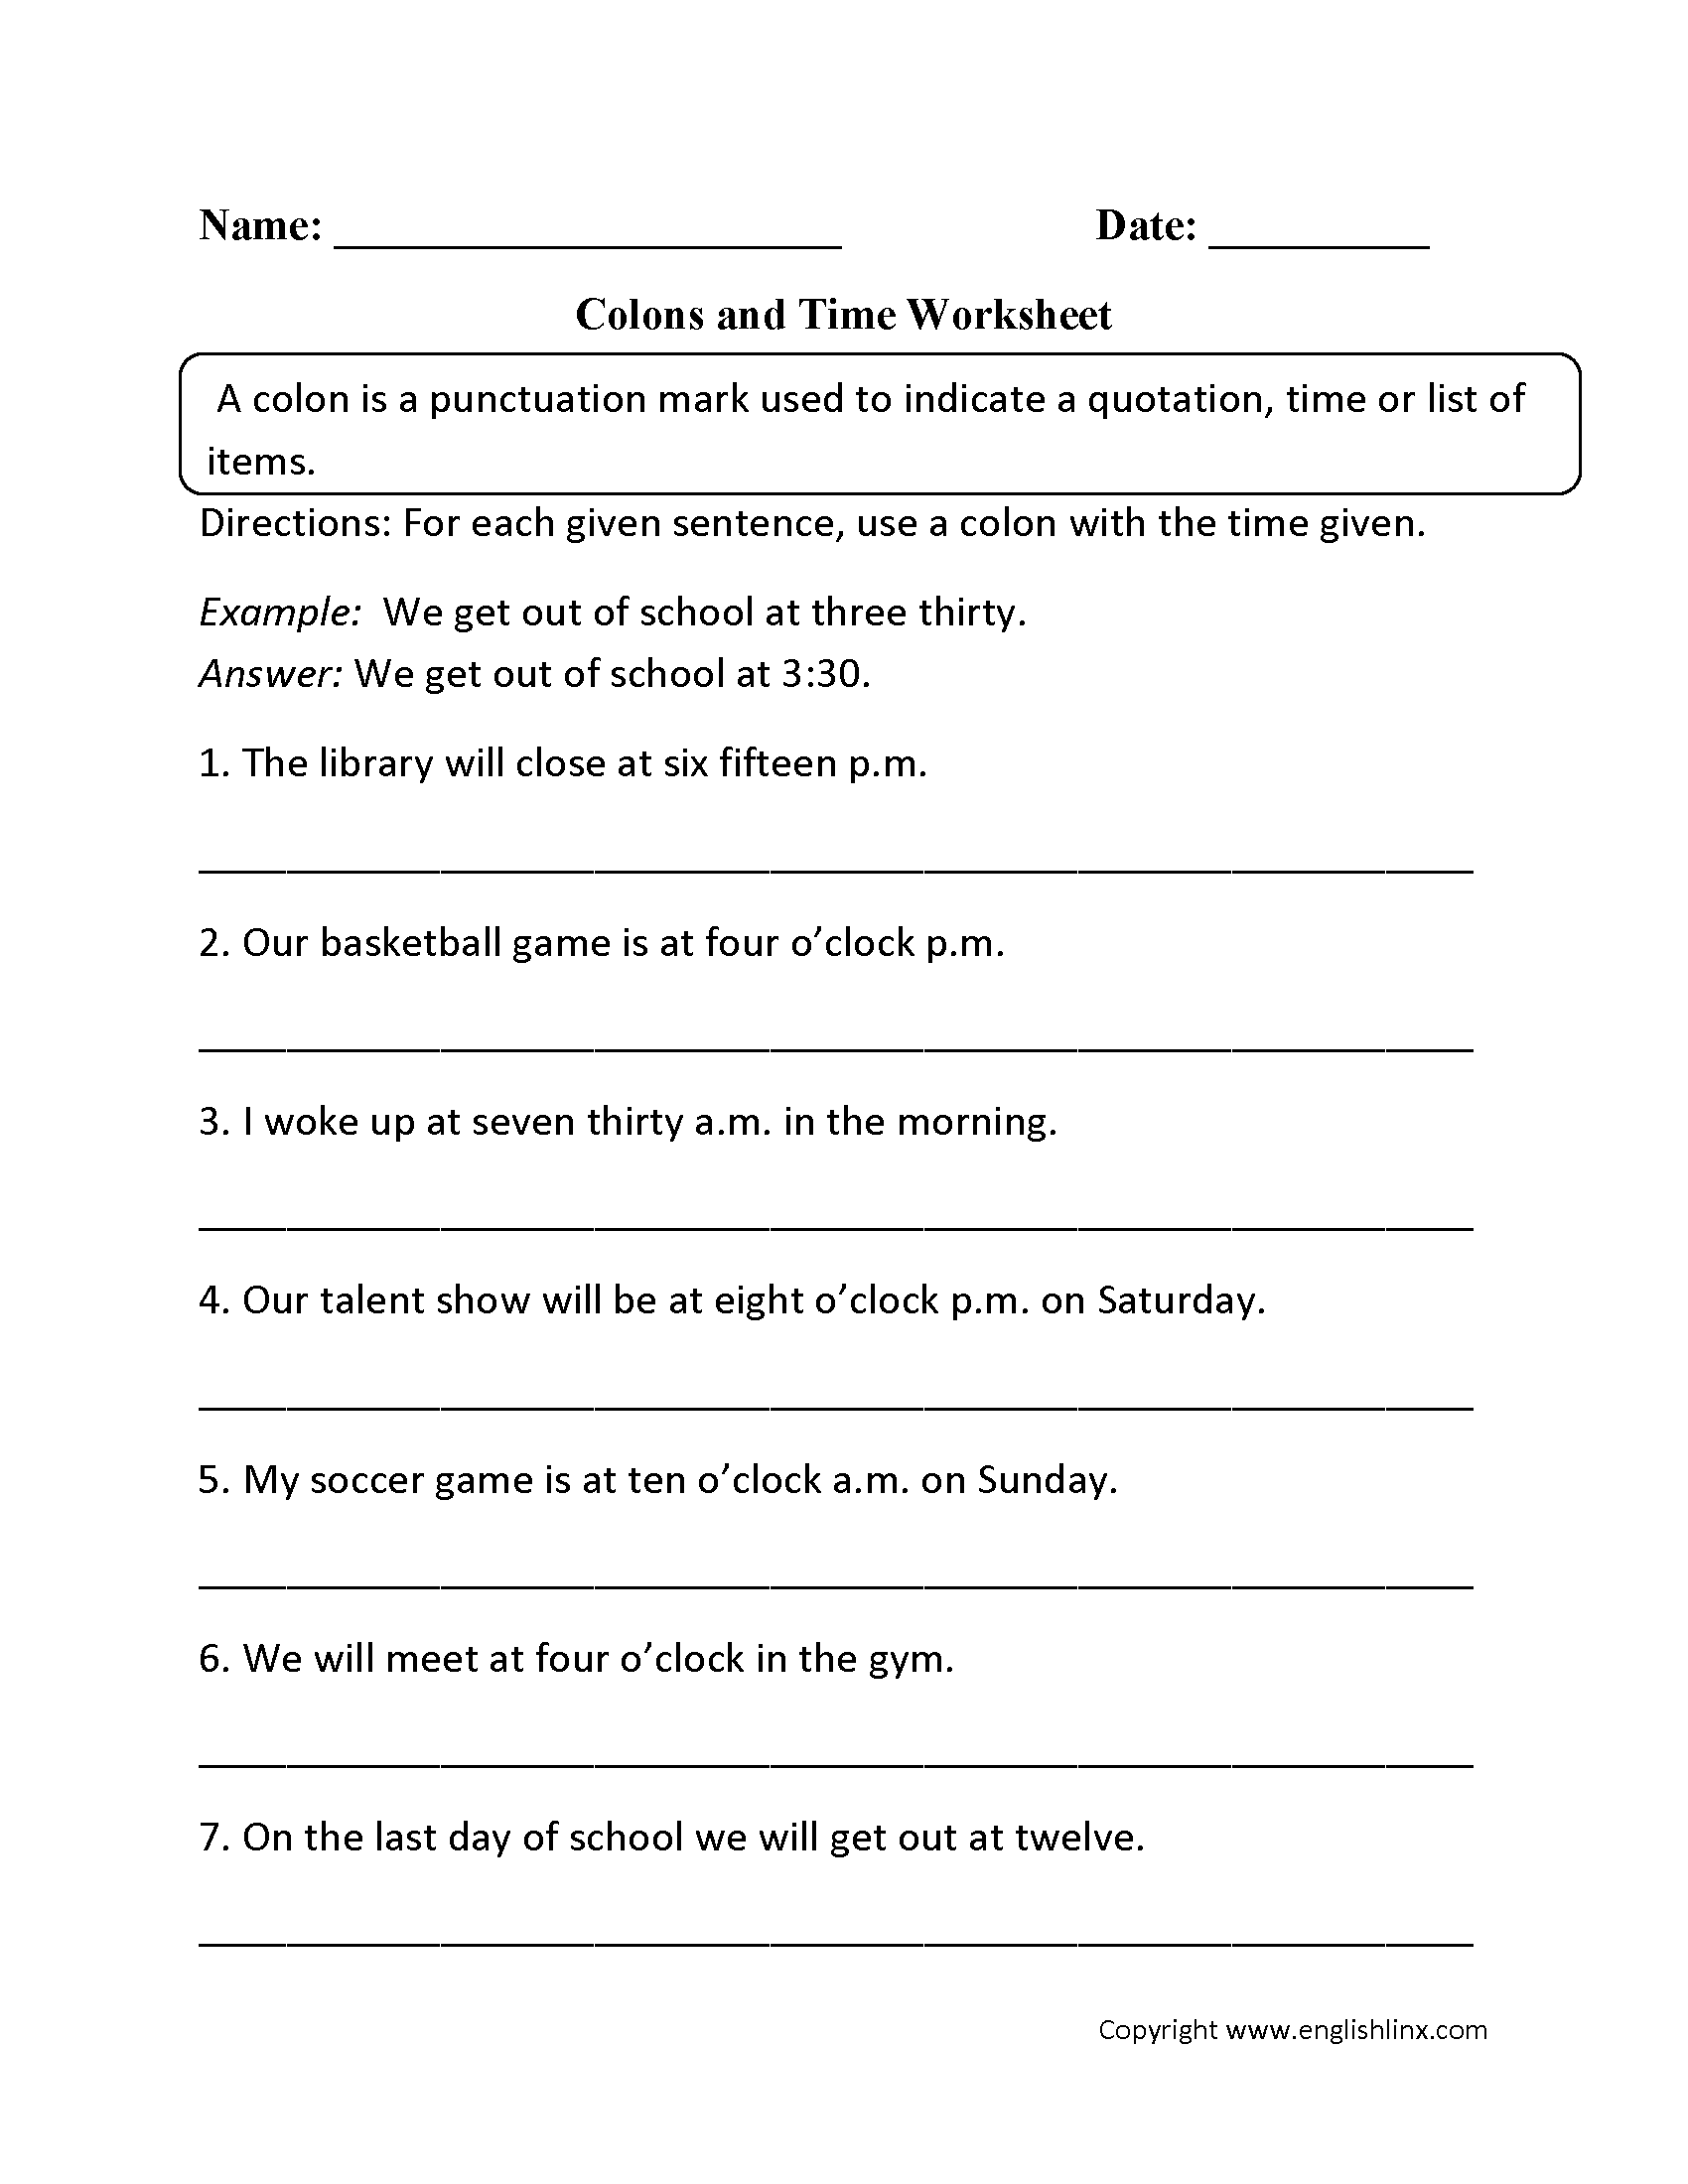 Worksheets Colon Worksheet grammar worksheets punctuation colon worksheets